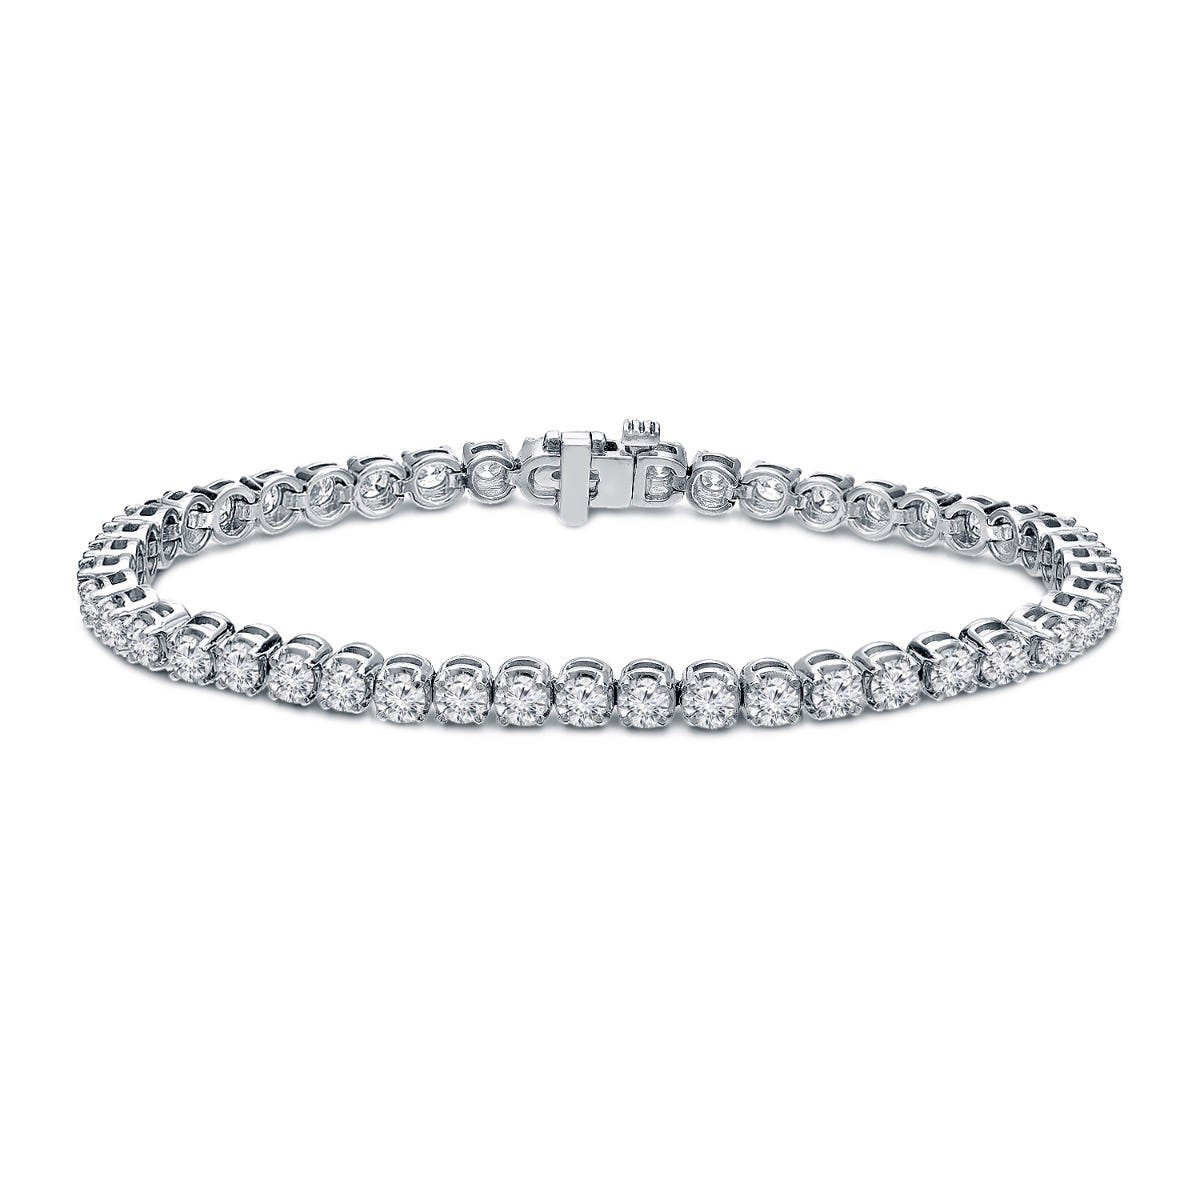 6ctw. 4-Prong Round Link Diamond Tennis Bracelet in 14K White Gold  (IJ, I1-I2)